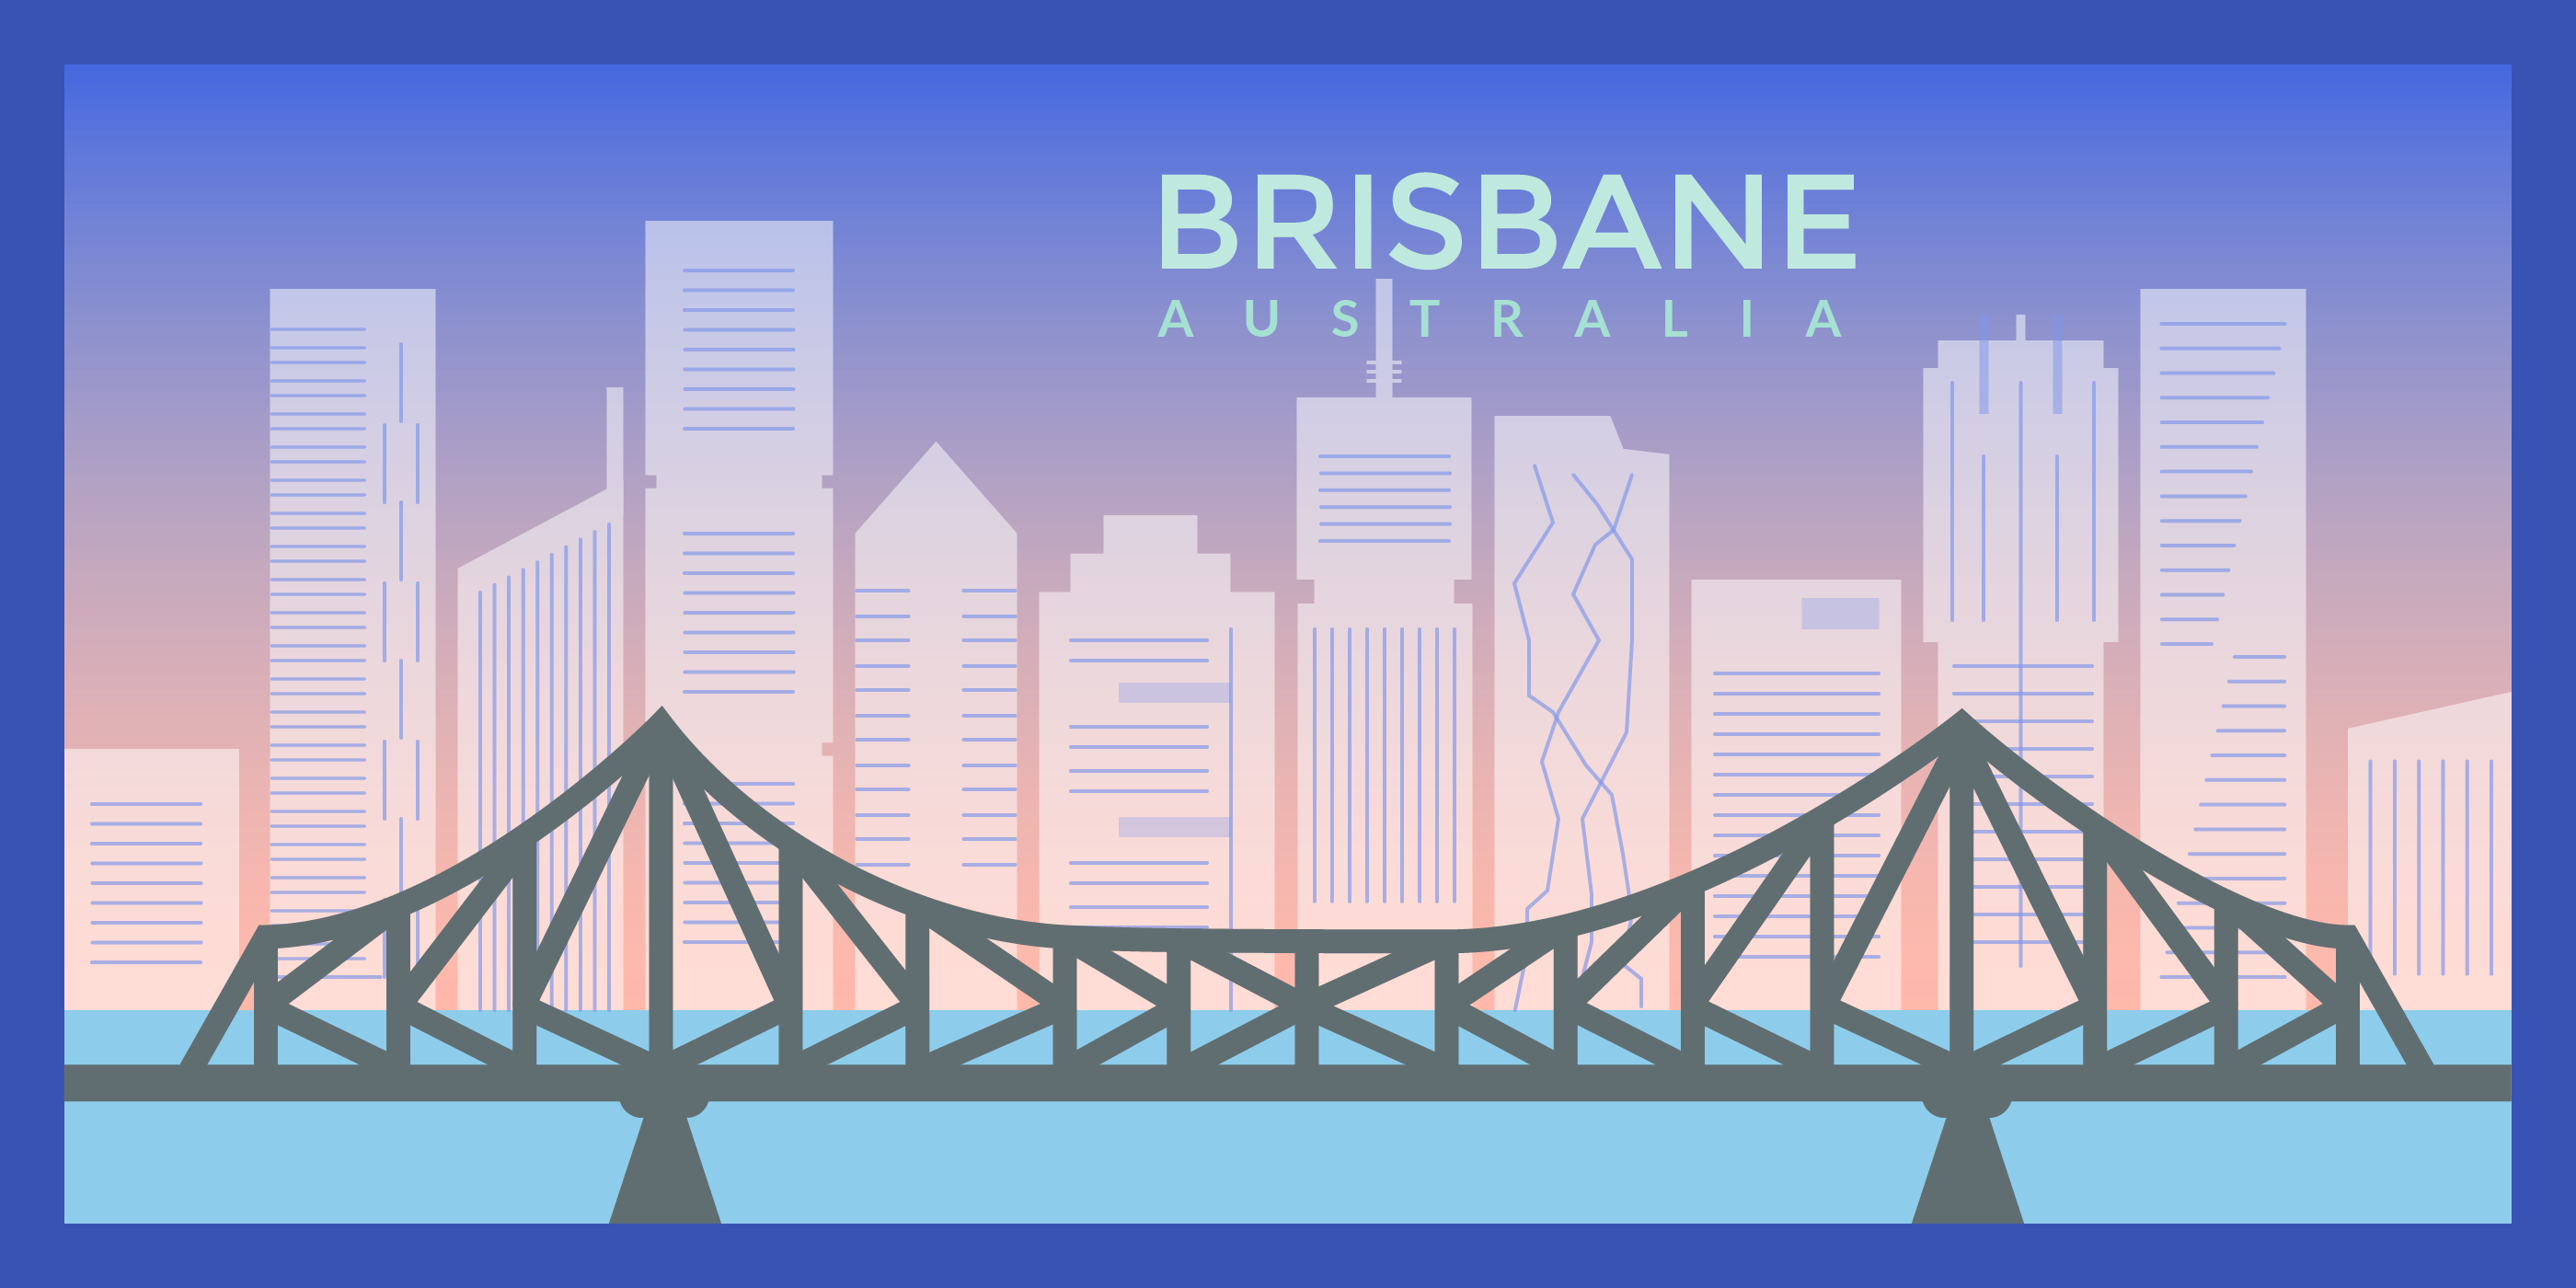 Illustration of Brisbane, Australia